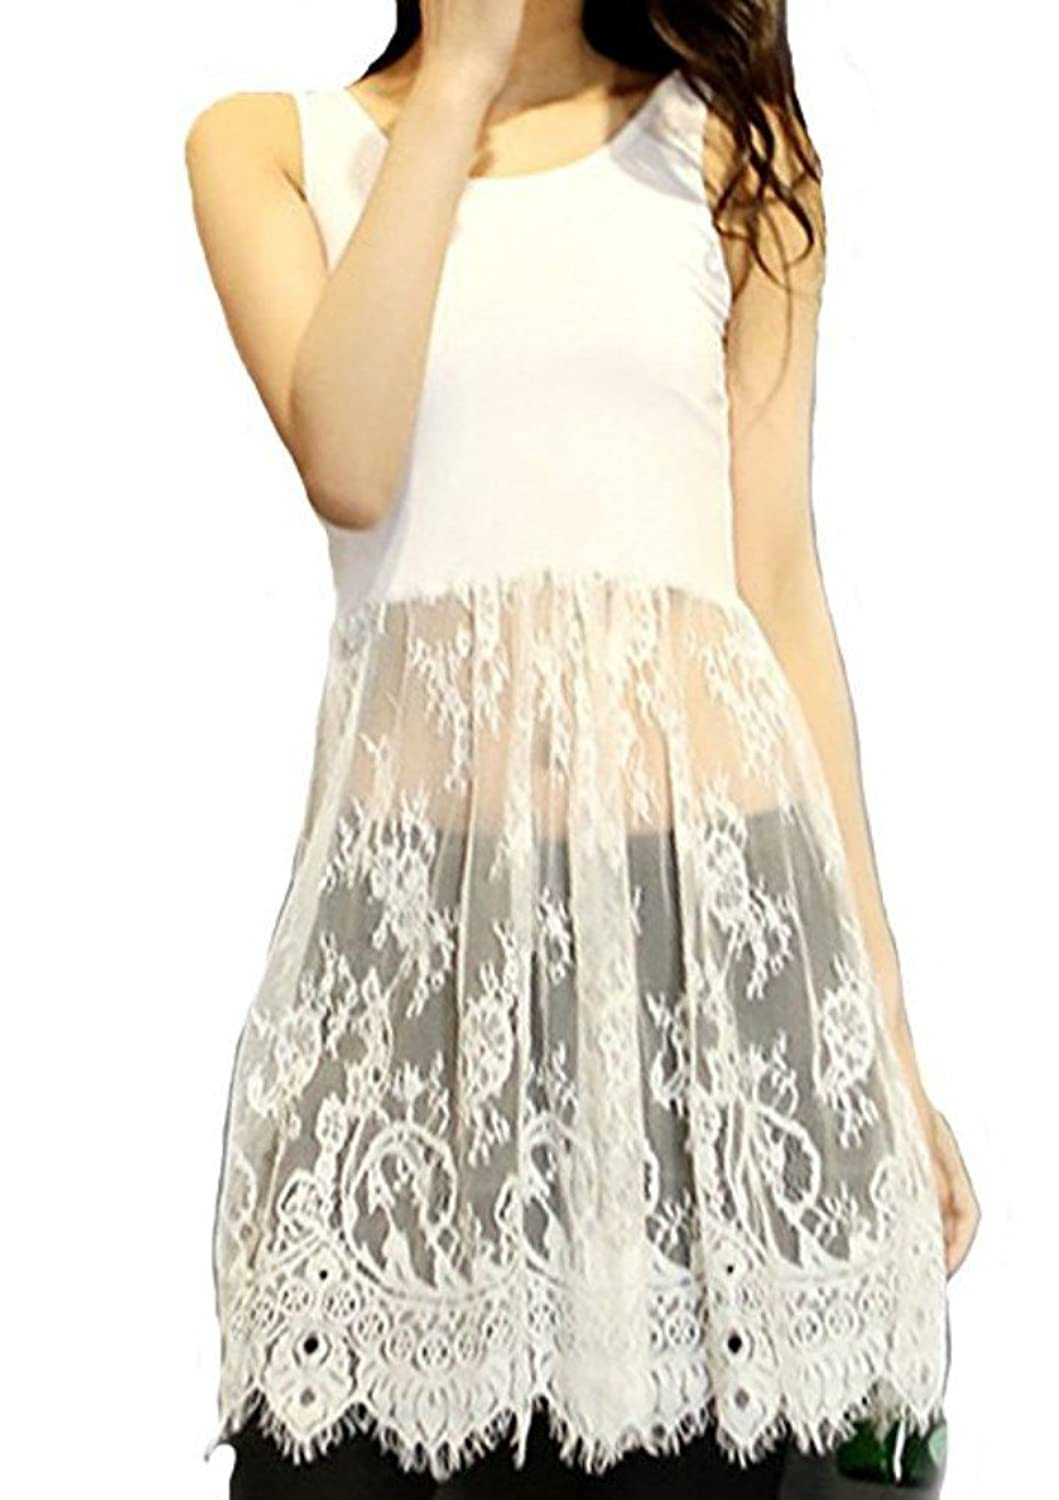 e5bfb7ade6a23c It s long enough that you can wear it as a top or dress extender. Elegant  see through lace trim tank top dress for casual wear